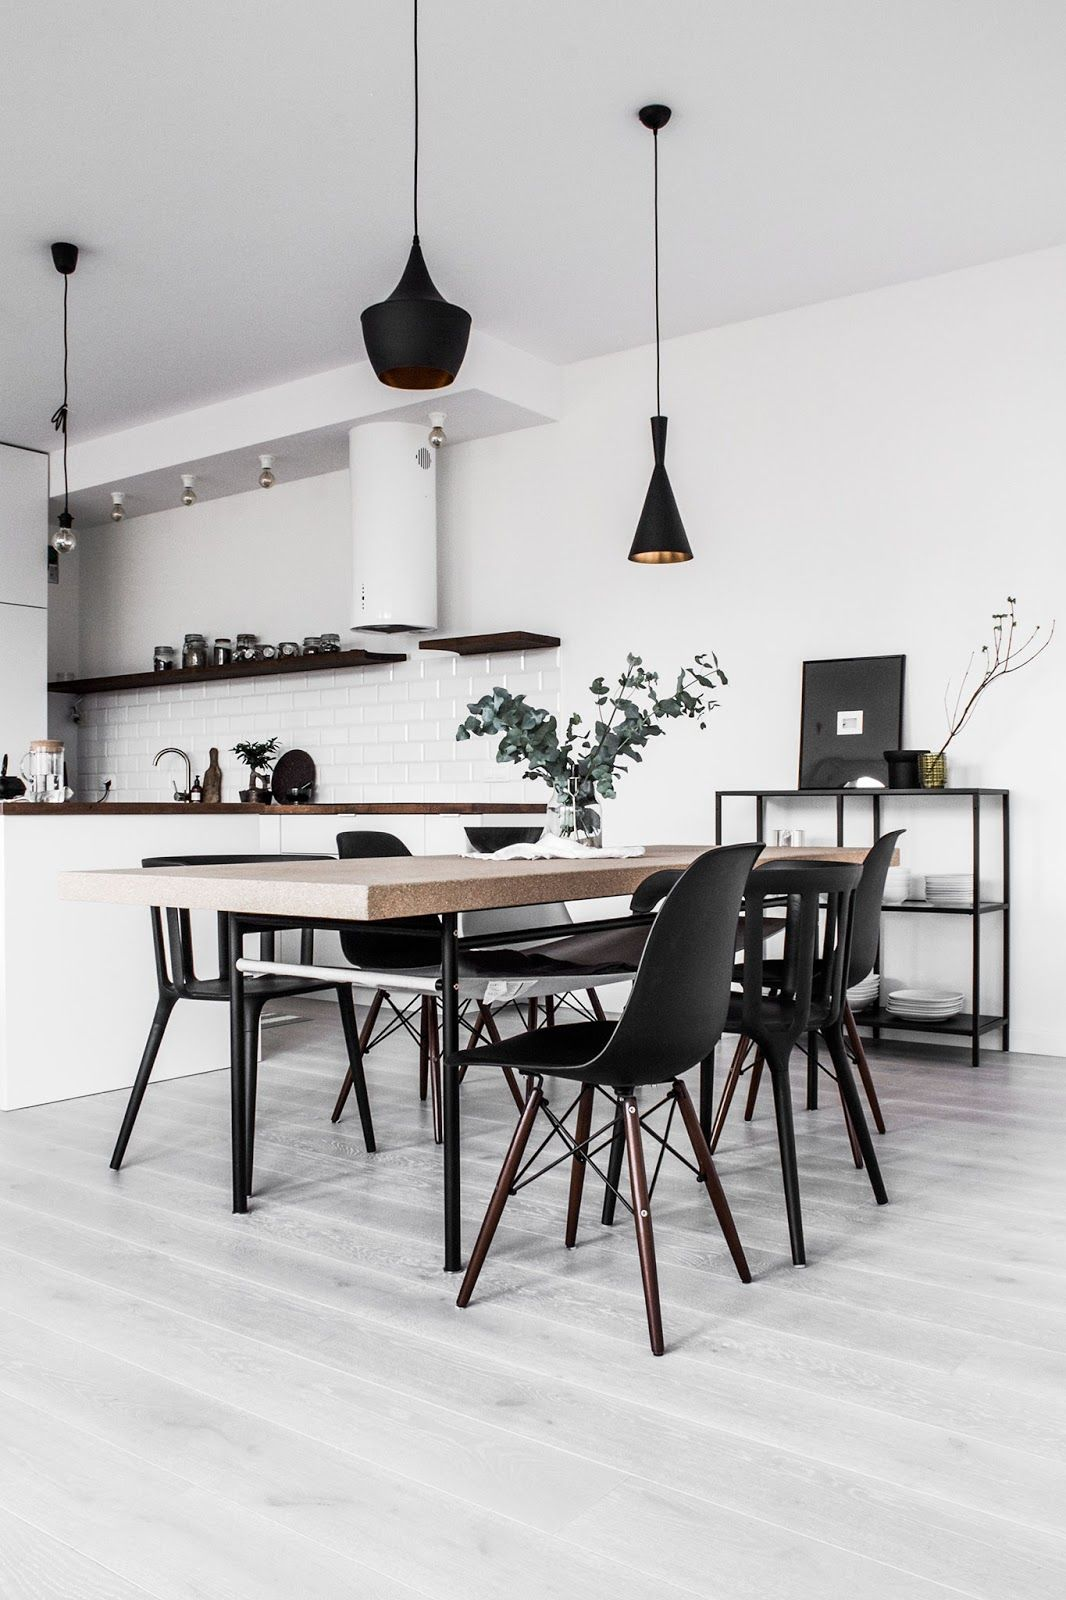 Scandinavian Apartment Black And White Interior Kitchen With Eames Chairs And Tom Dixon Lights Minimalist Dining Room Dining Room Design Simple Living Room